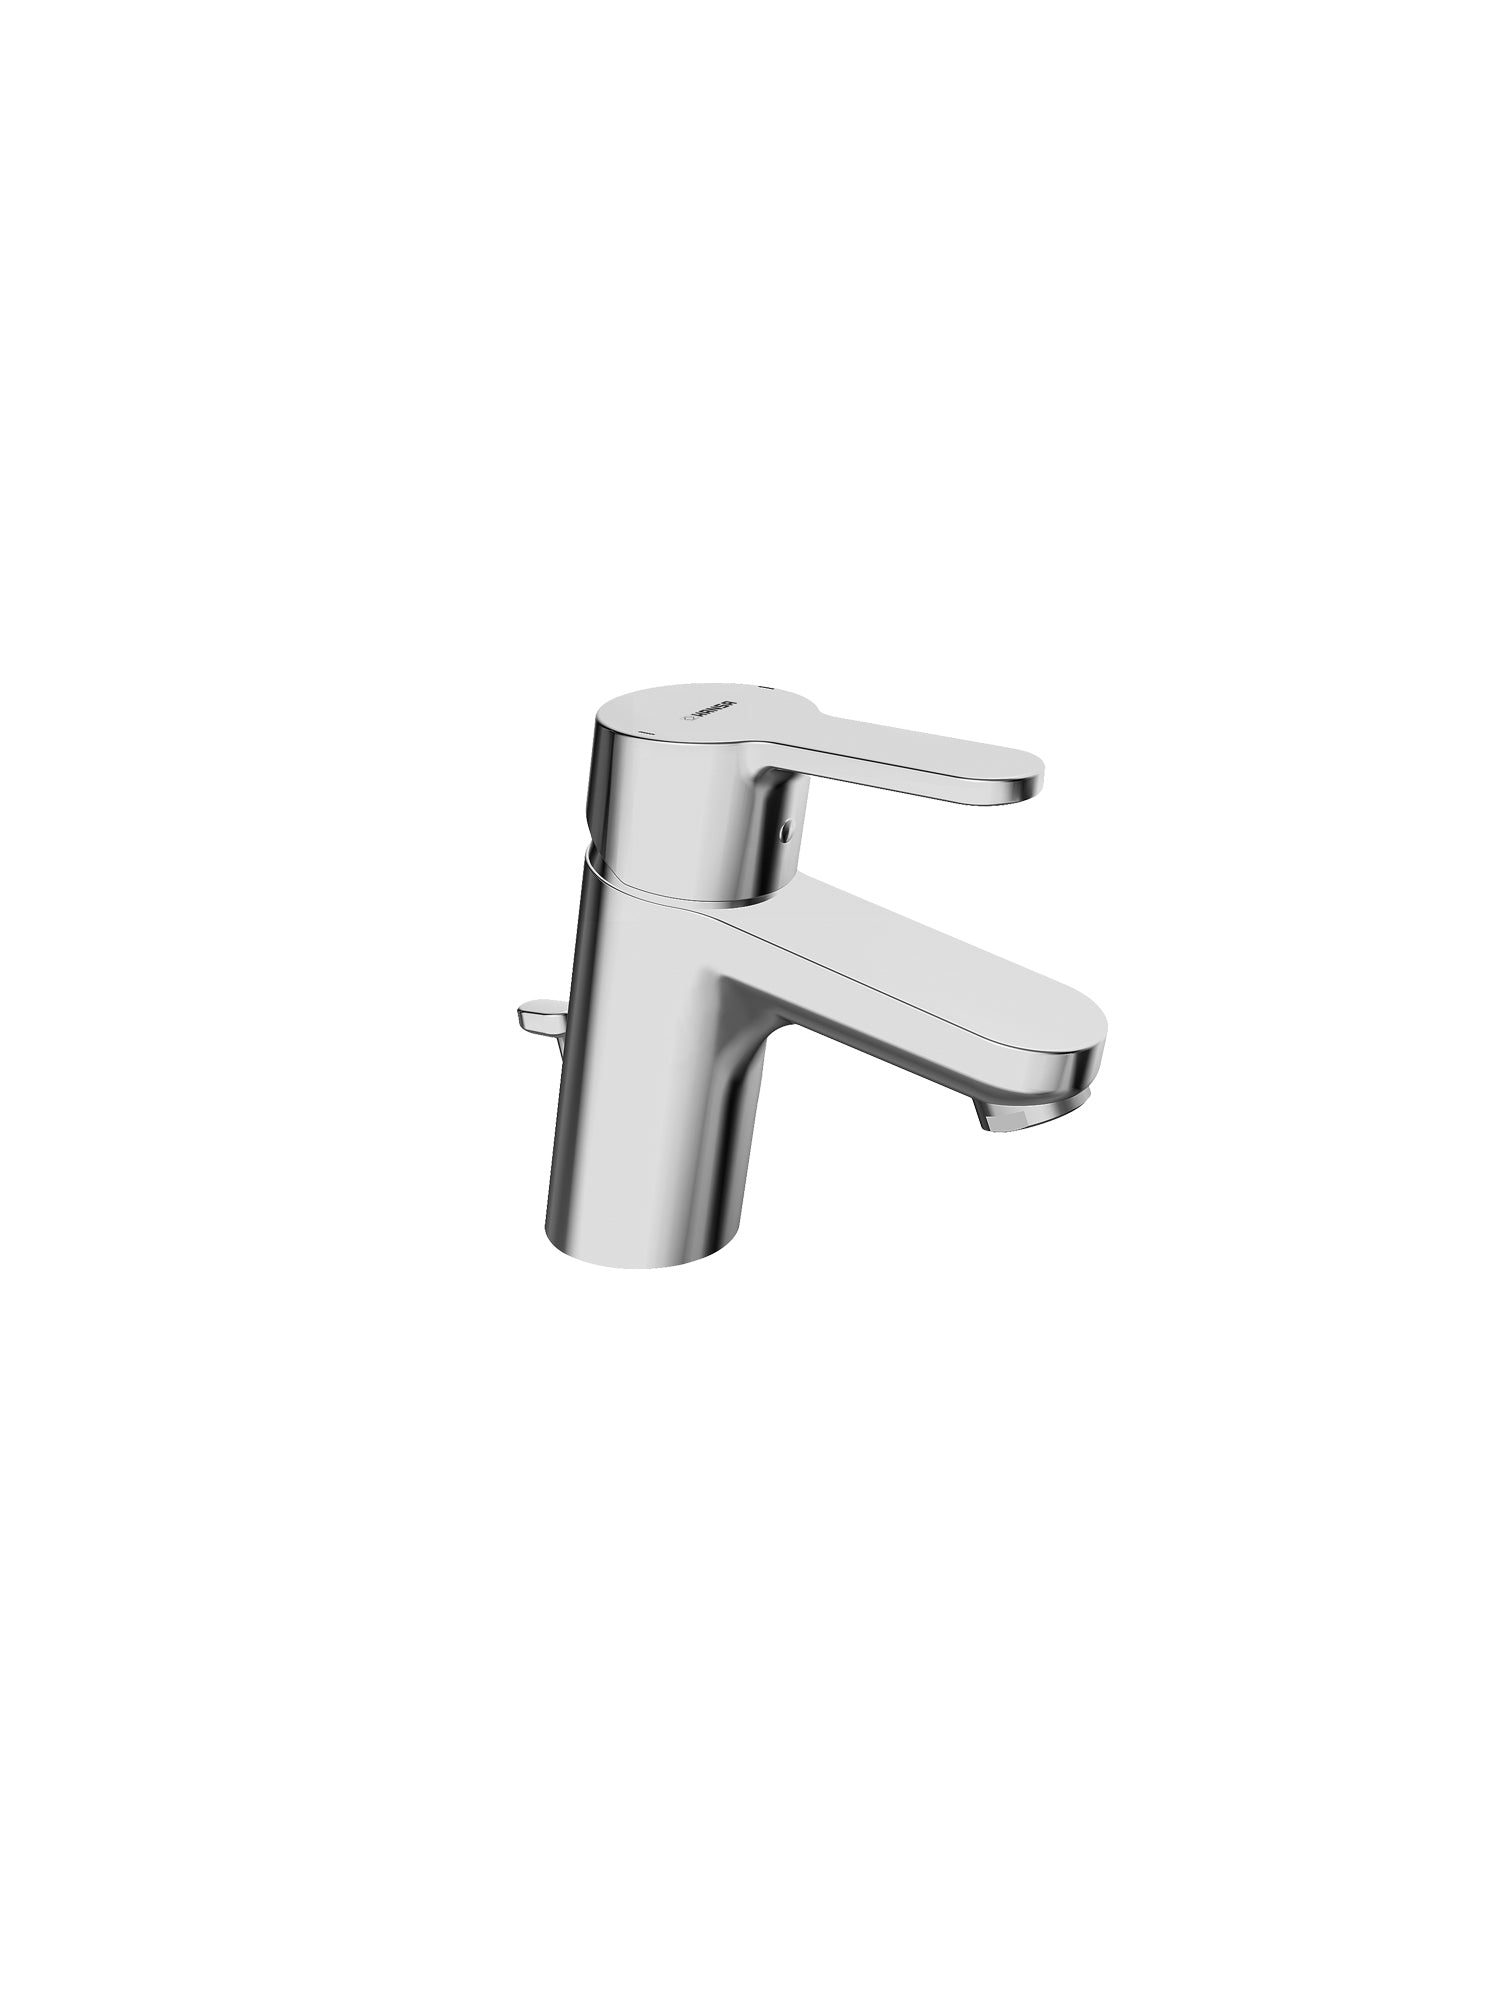 HansaPrimo Single Lever Basin Mixer #4940 2203